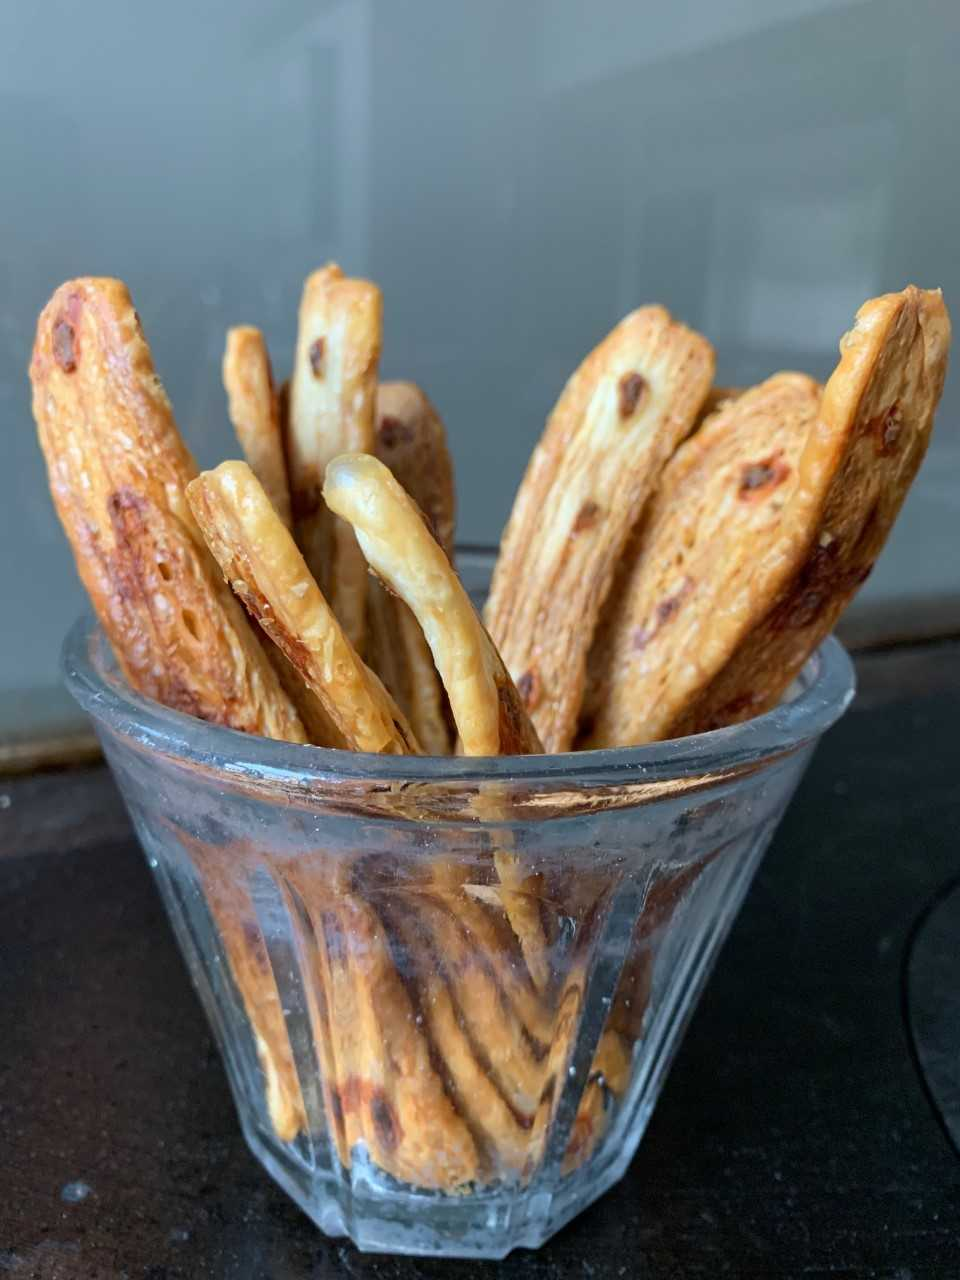 Anchovy Sticks Are the New Cheese Straws